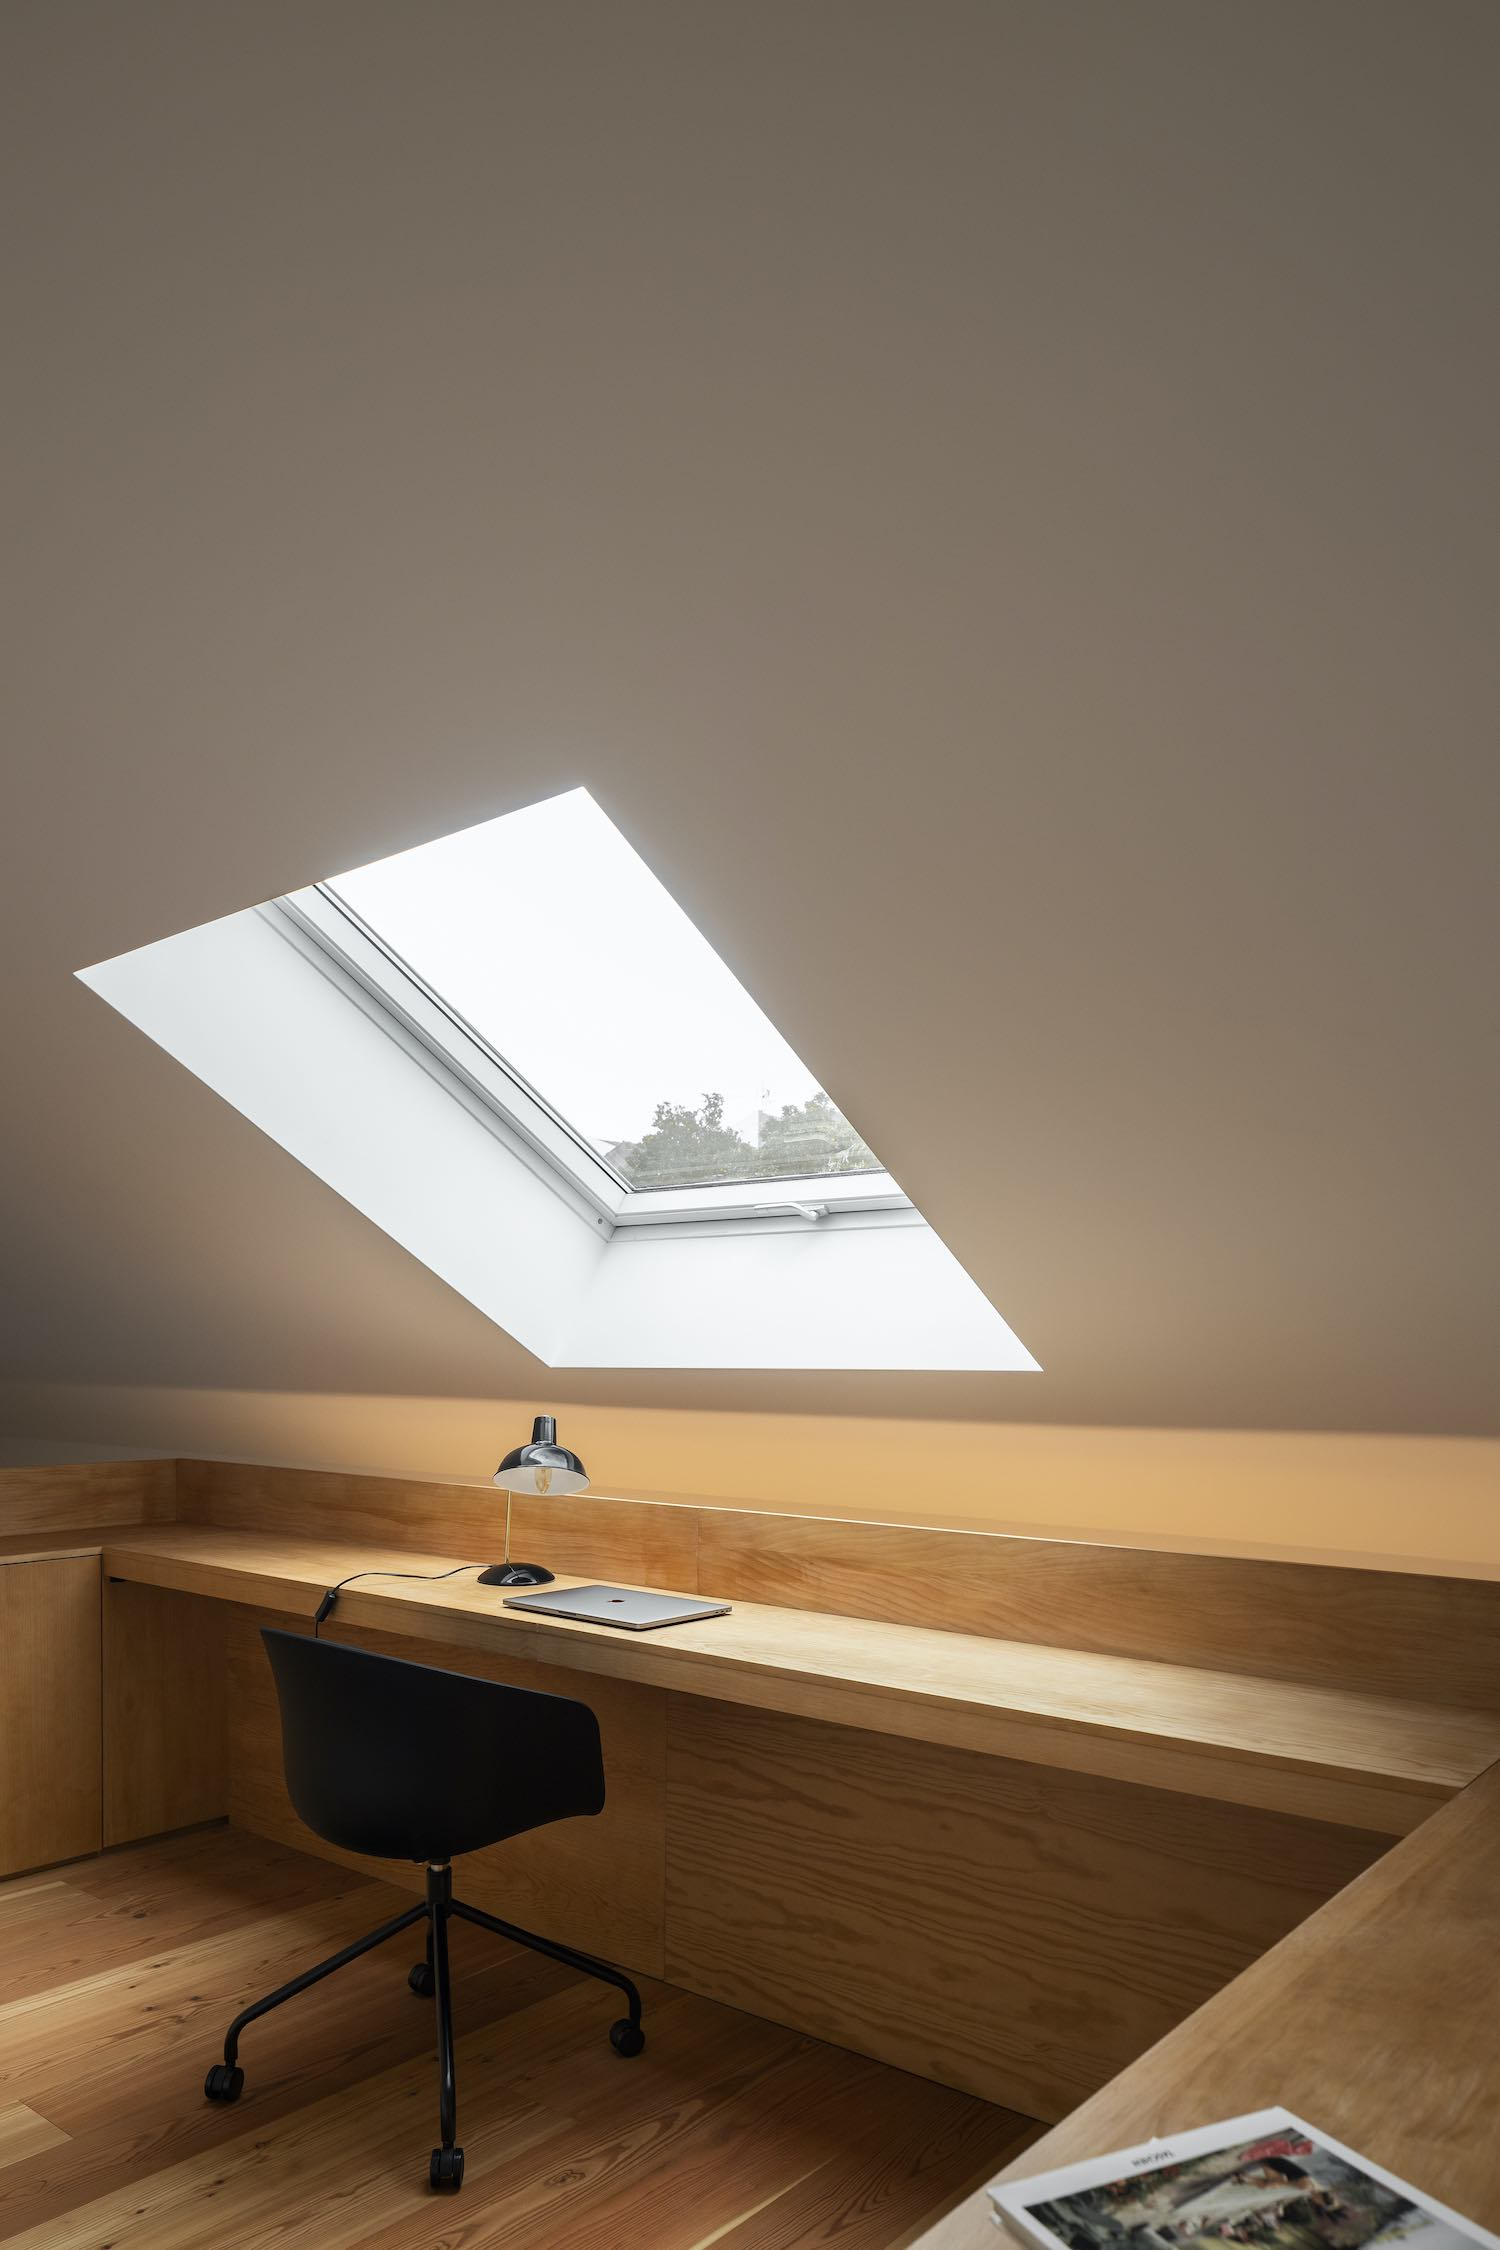 open window in the ceiling let the sunlight enters the office room